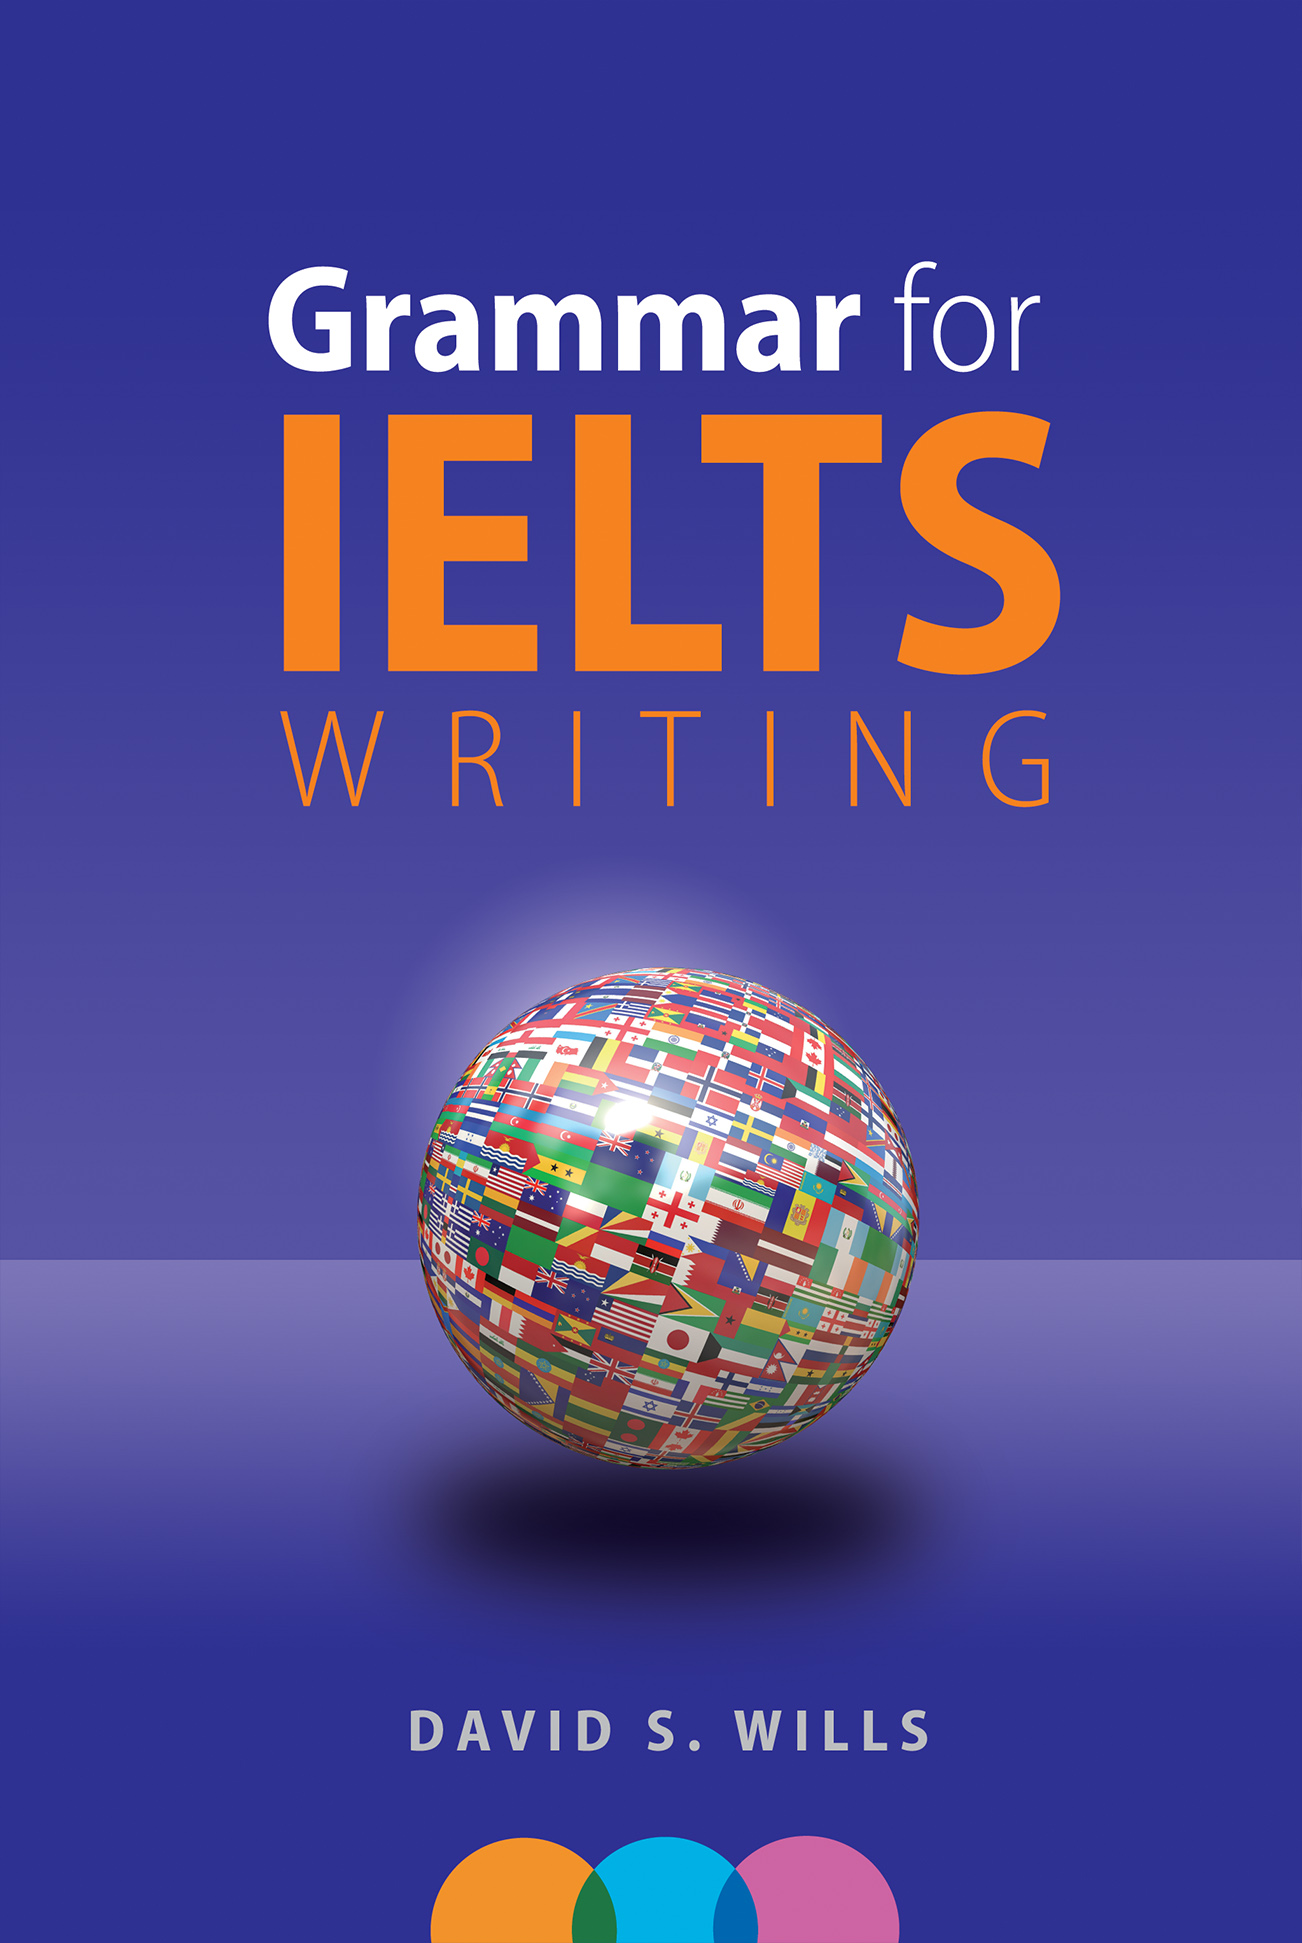 new cover Small - How to Prepare for the IELTS Reading Test